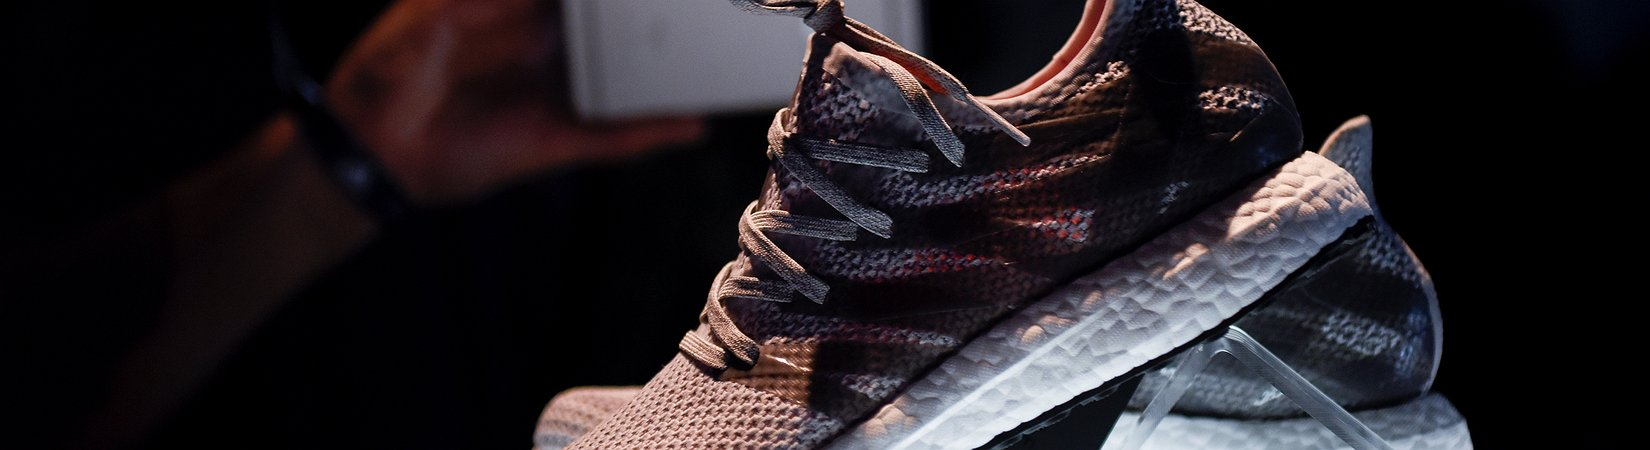 Adidas and Silicon Valley firm to 3D print shoes